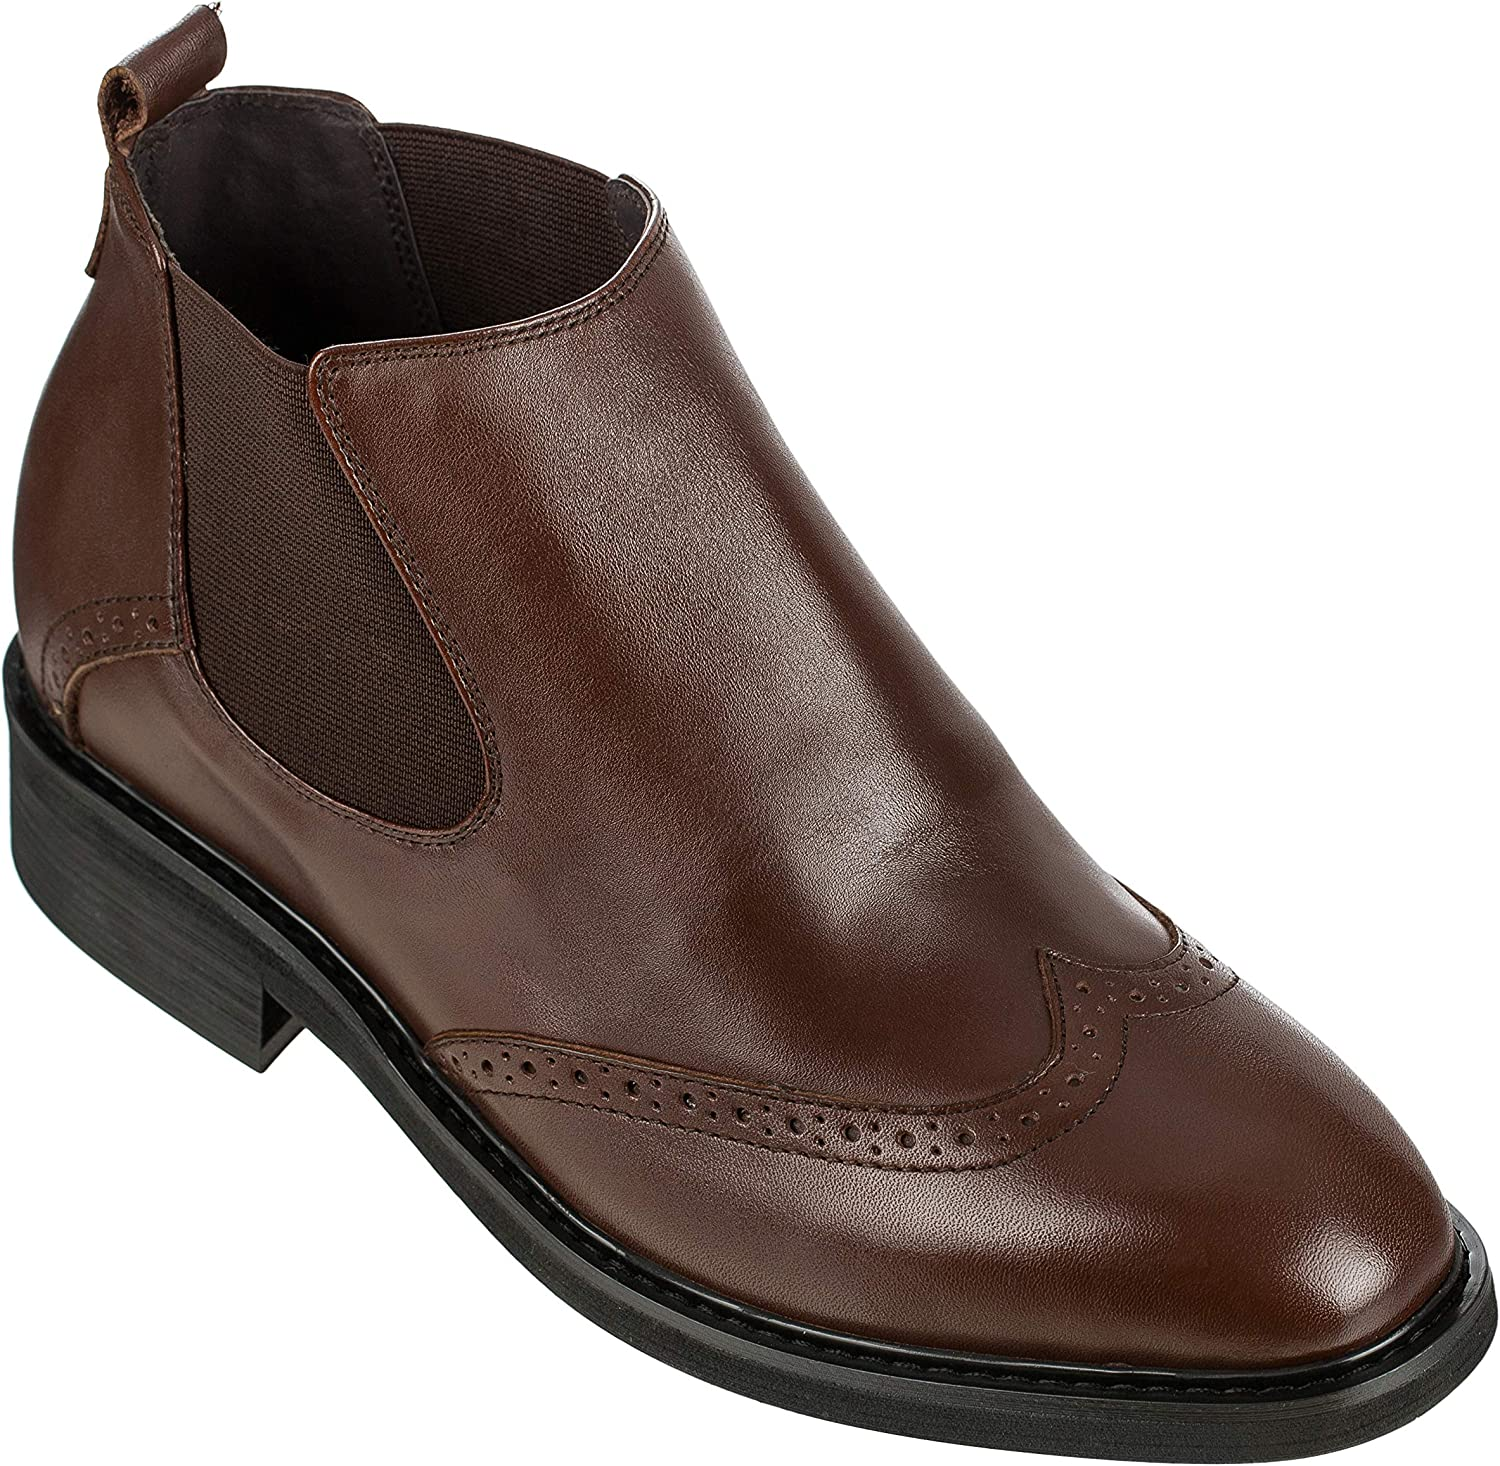 Calden Men's Invisible Height Increasing Elevator shoes - Dark Brown Leather Slip-on Wing-tip Chelsea Boots - 3 Inches Taller - K288021